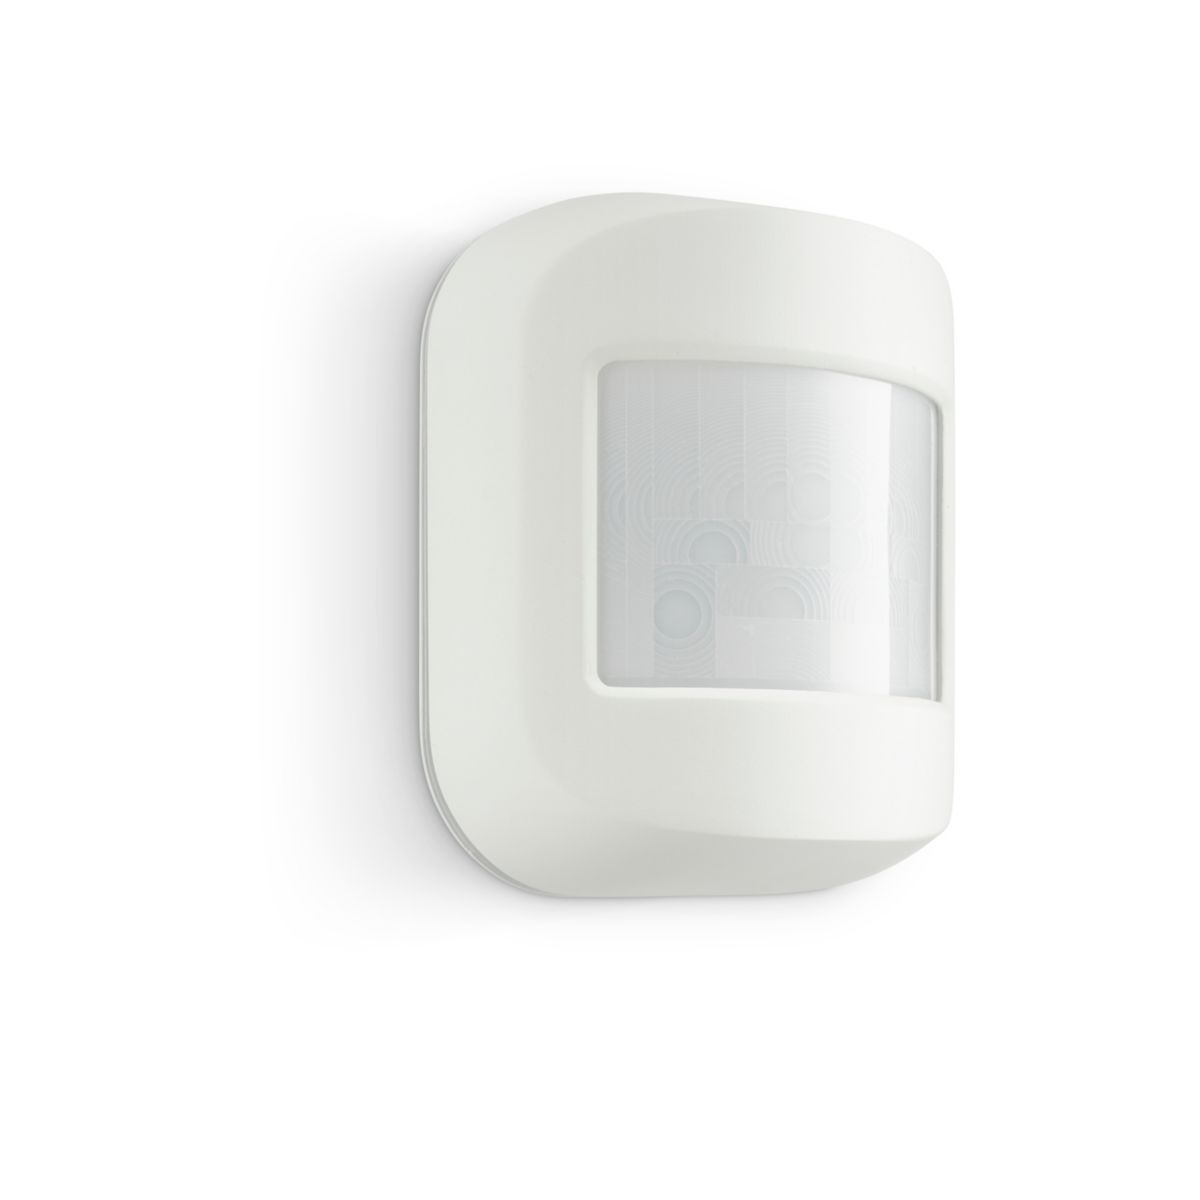 Illuminazione Wireless Occuswitch Wireless Sistemi Di Controllo Stand Alone Per